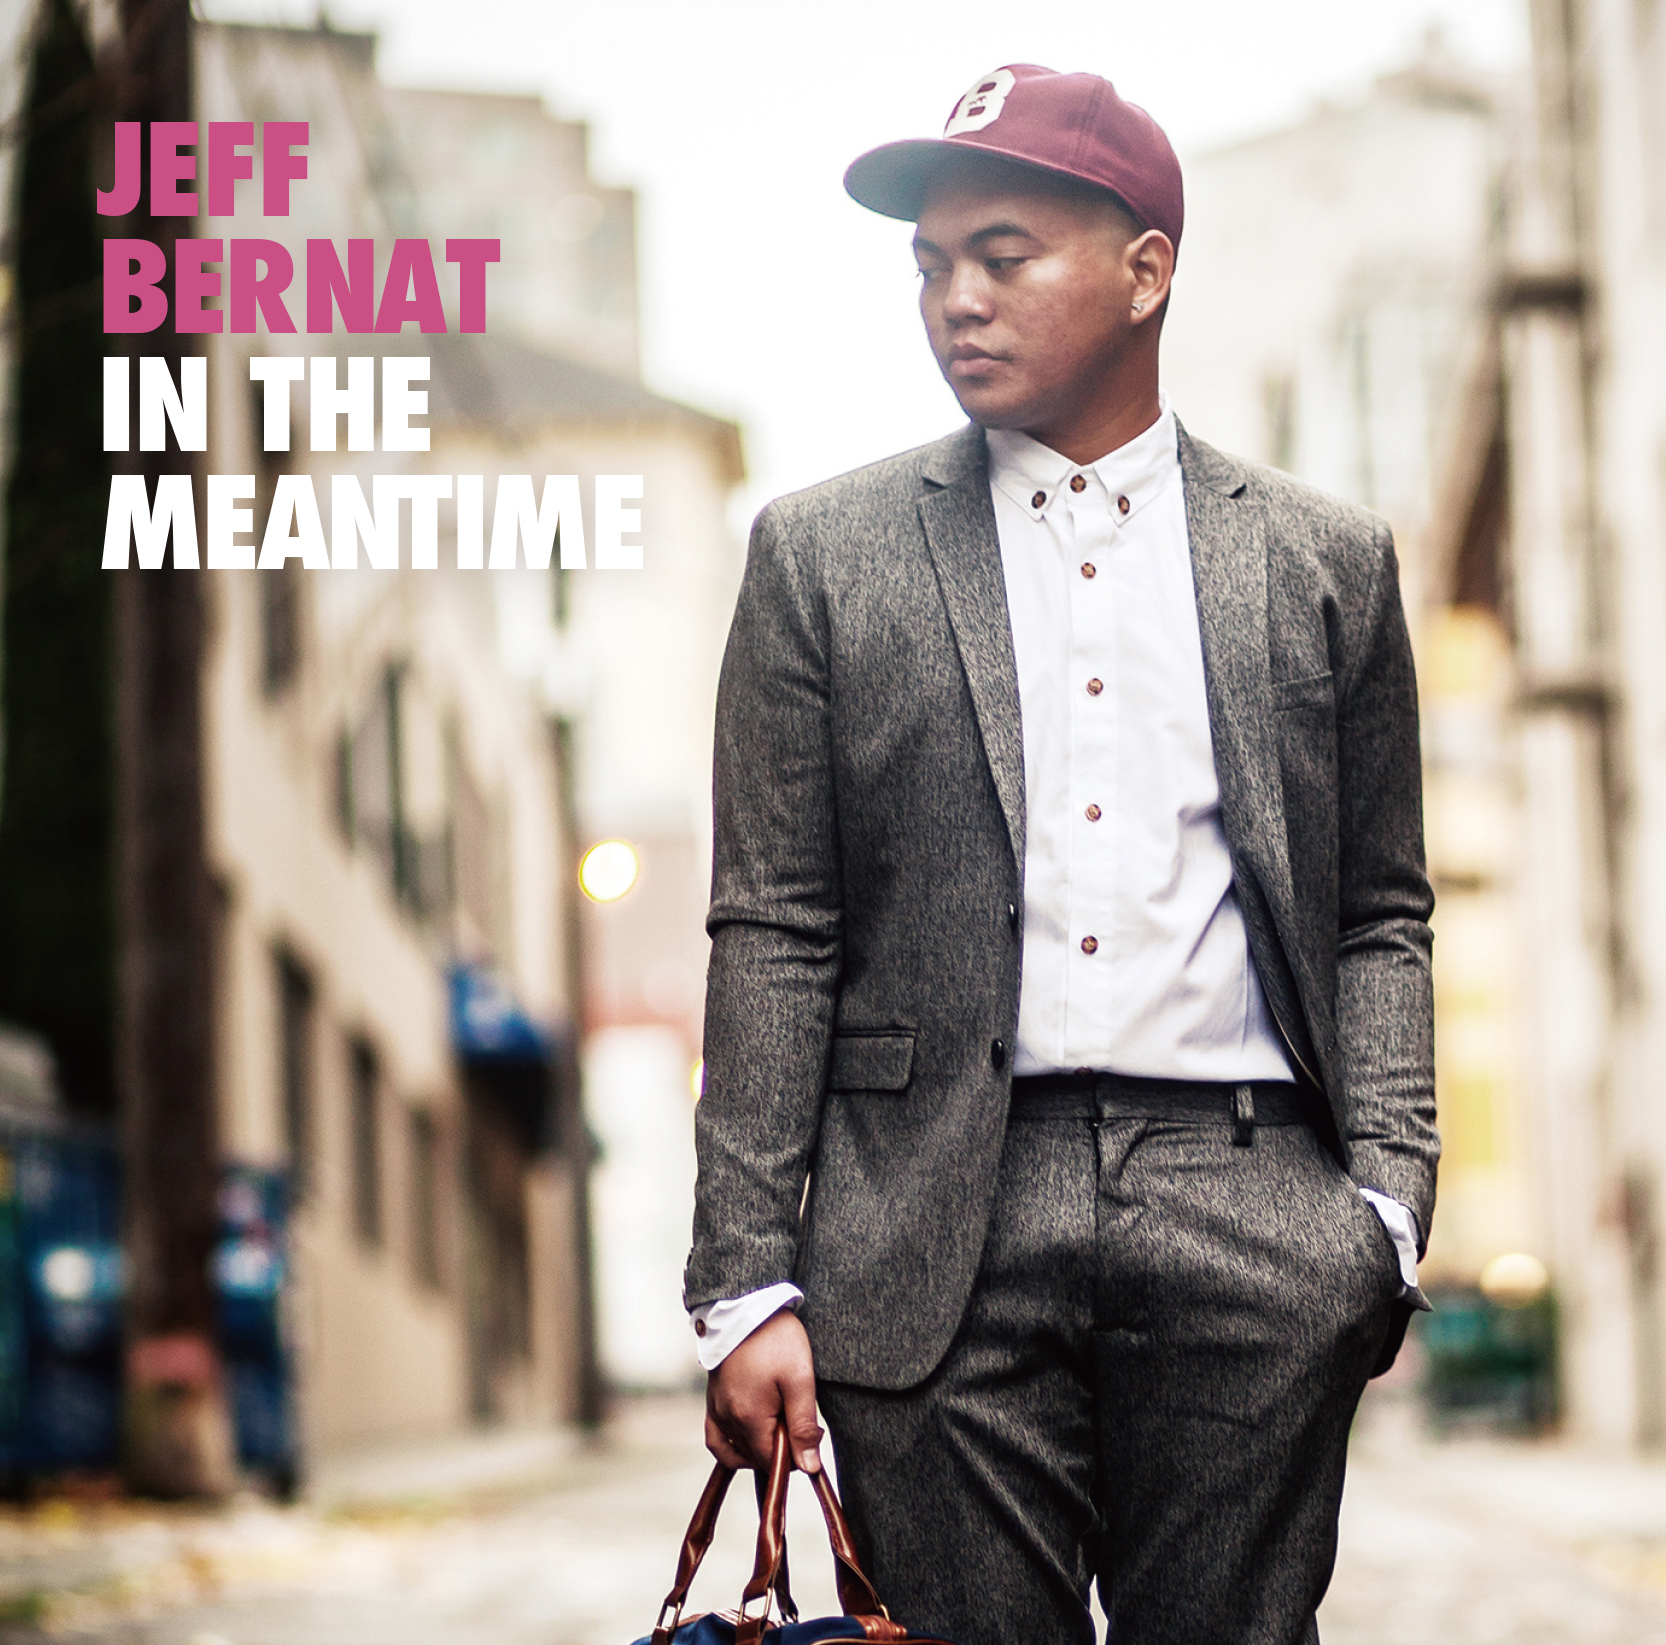 JEFF BERNAT「In The Meantime」